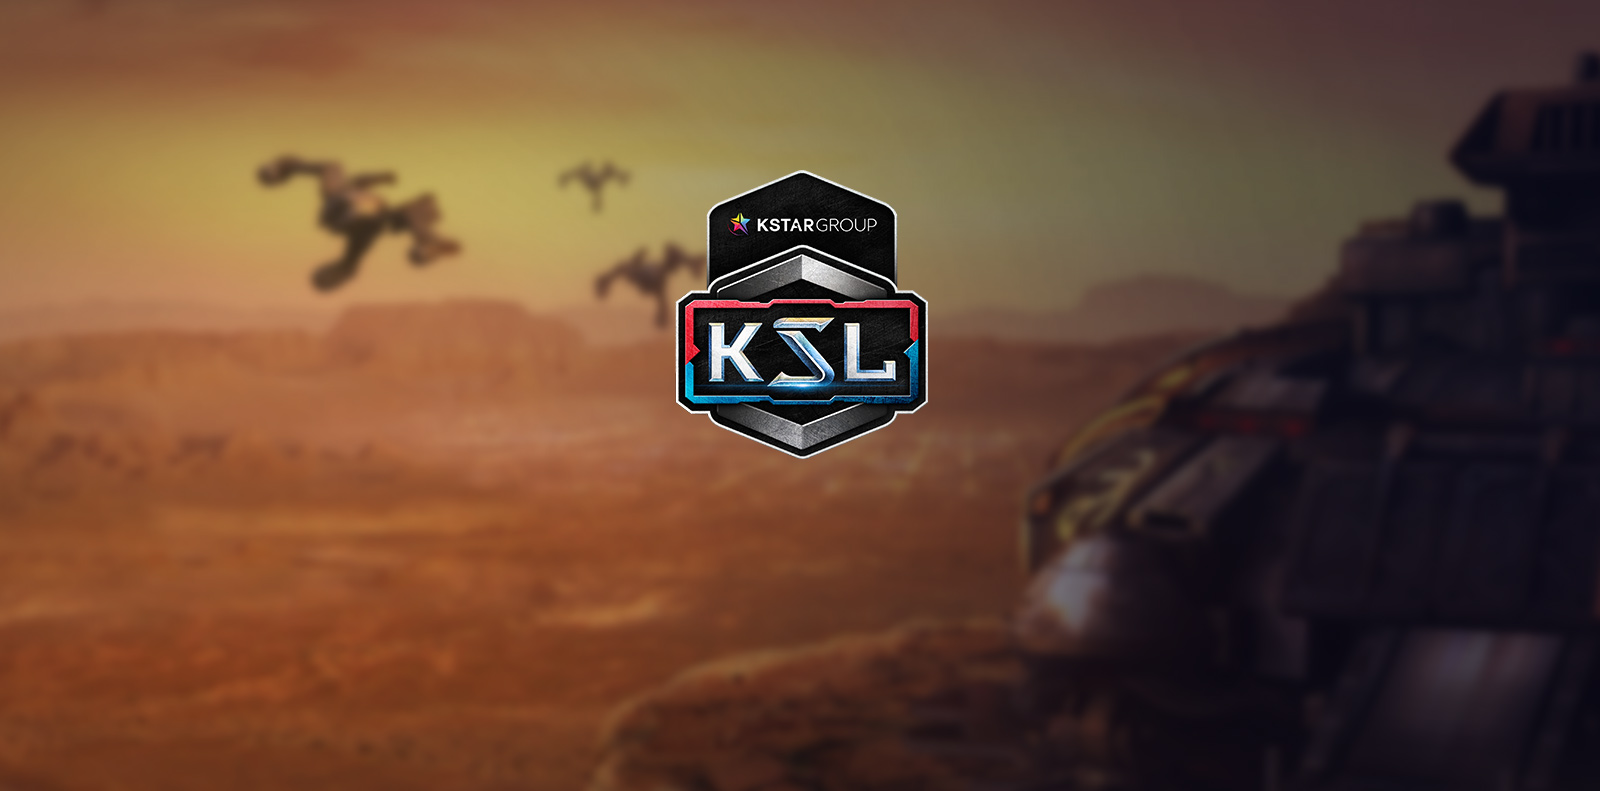 KSL Season 2 announcement